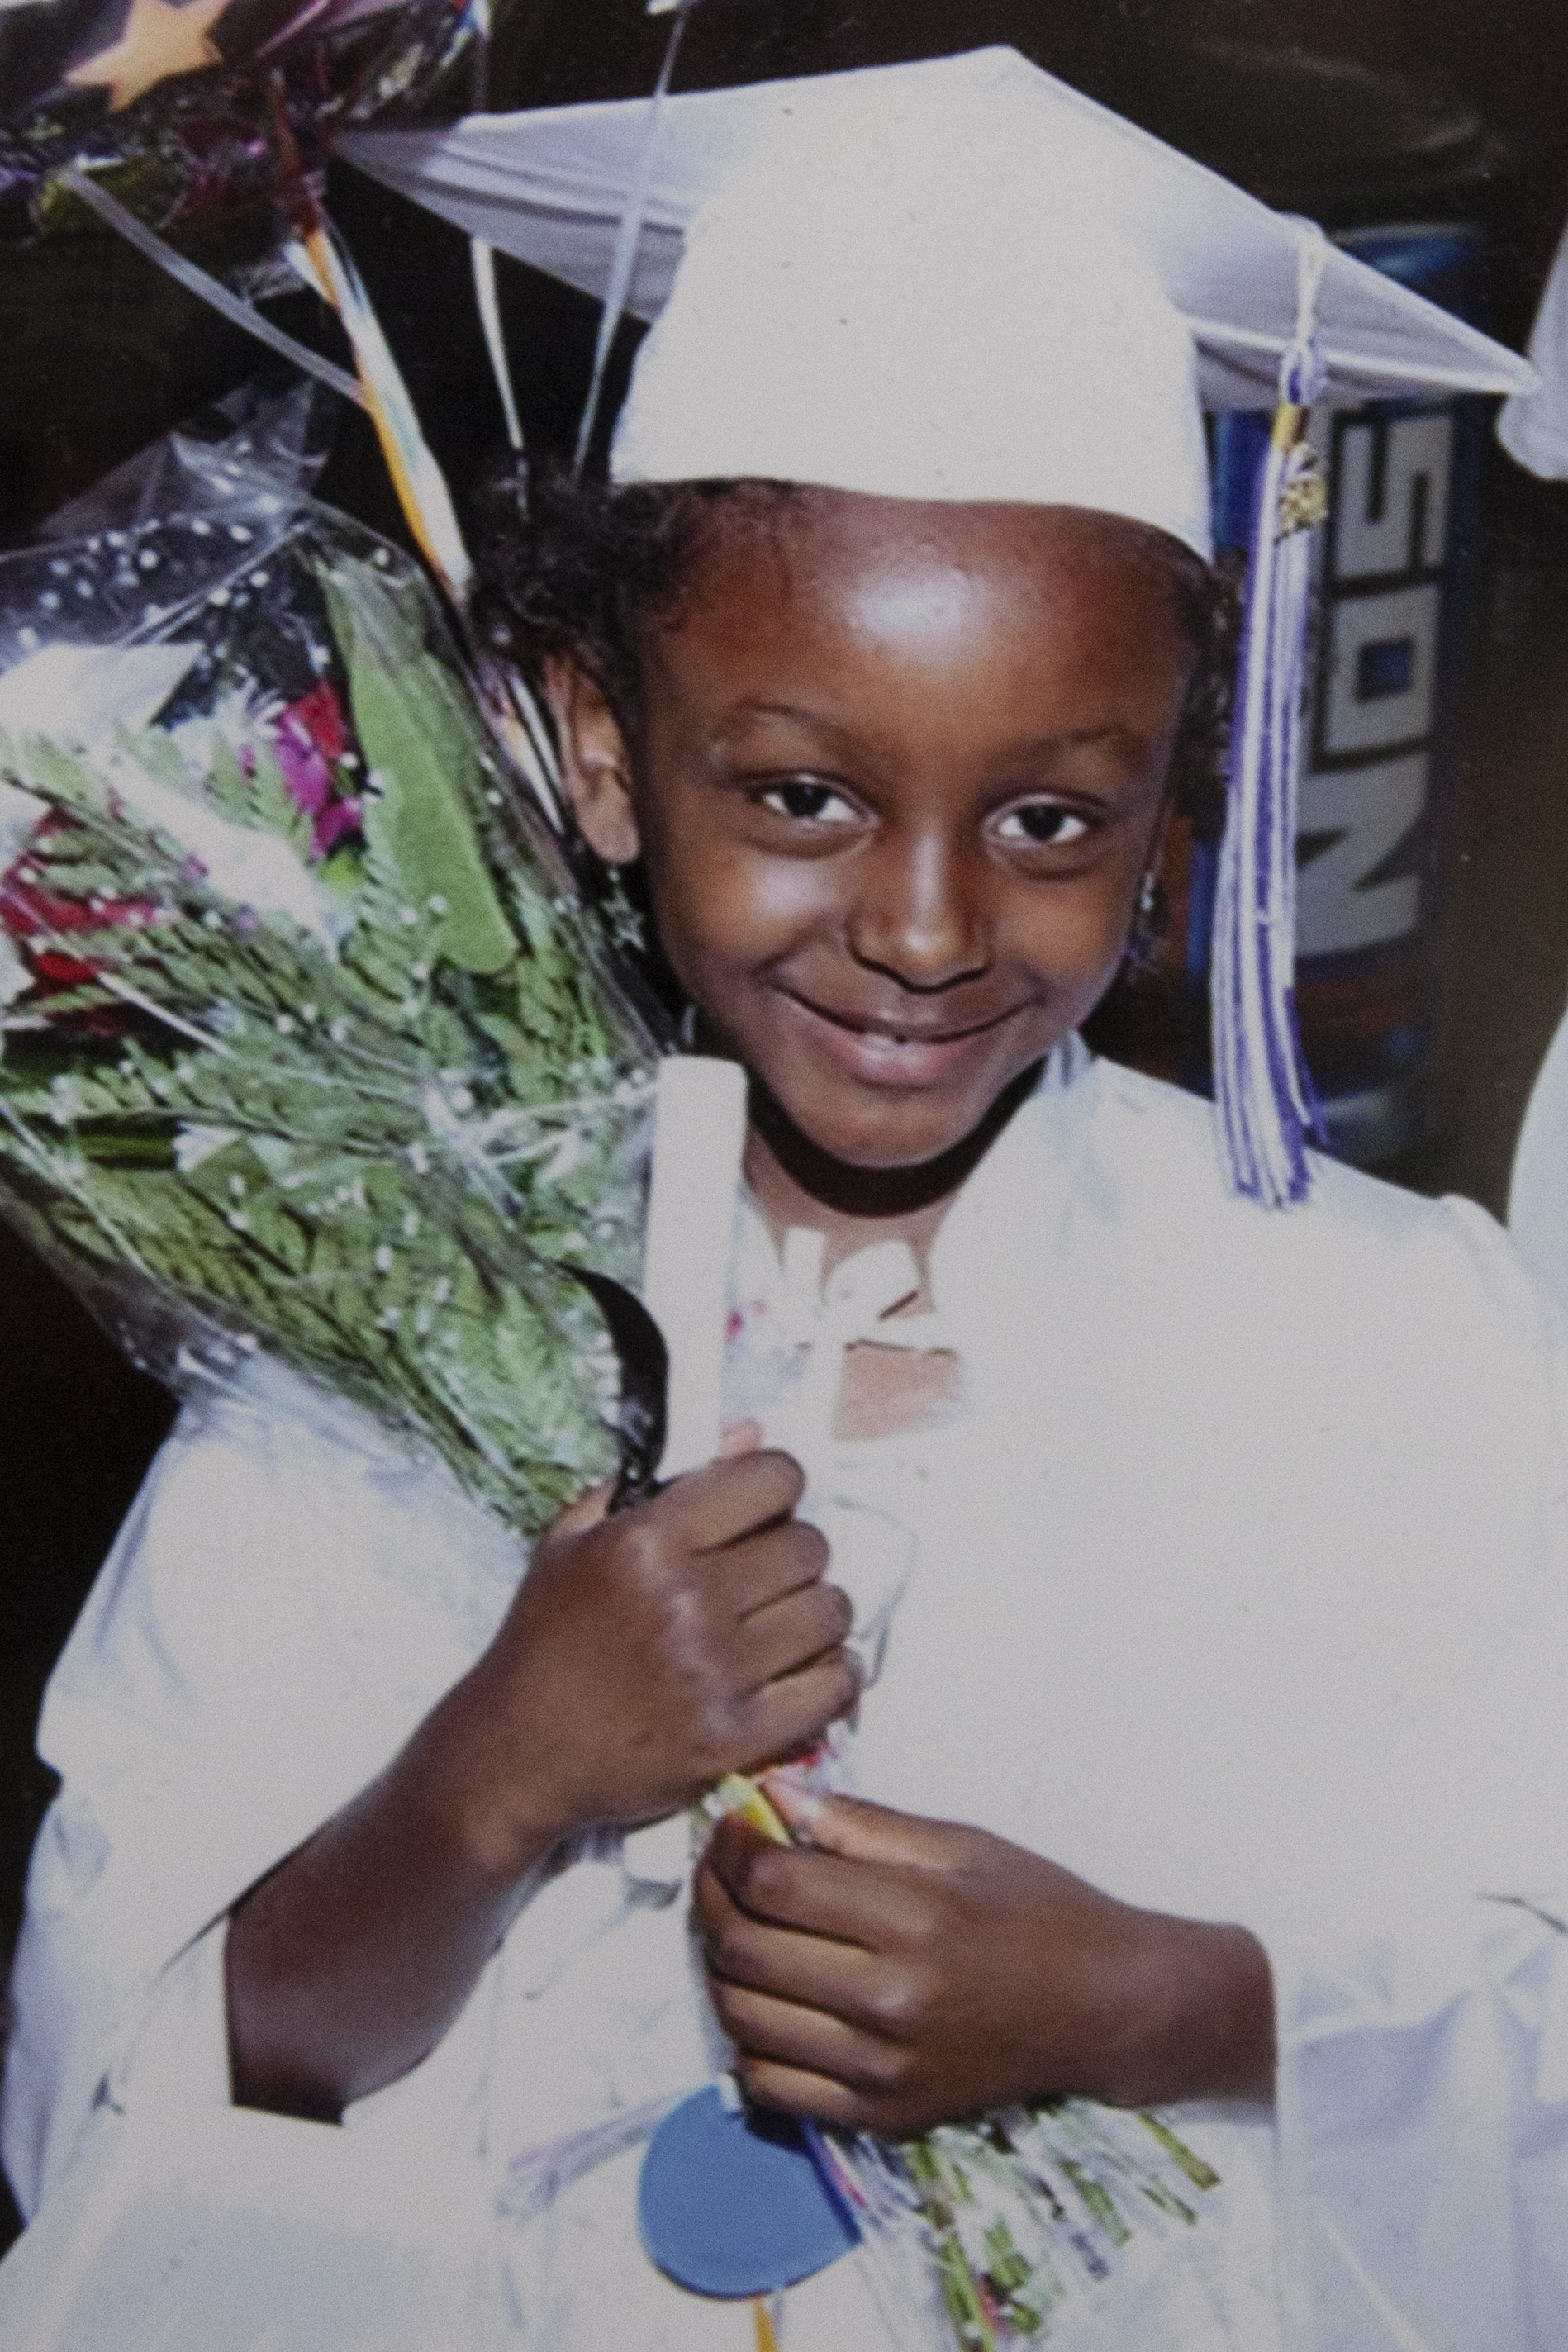 Heaven Sutton was fatally shot on June 27, 2012, while standing outside her Austin home. Jerrell Dorsey, the gunman convicted of her murder received a 60-year sentence.